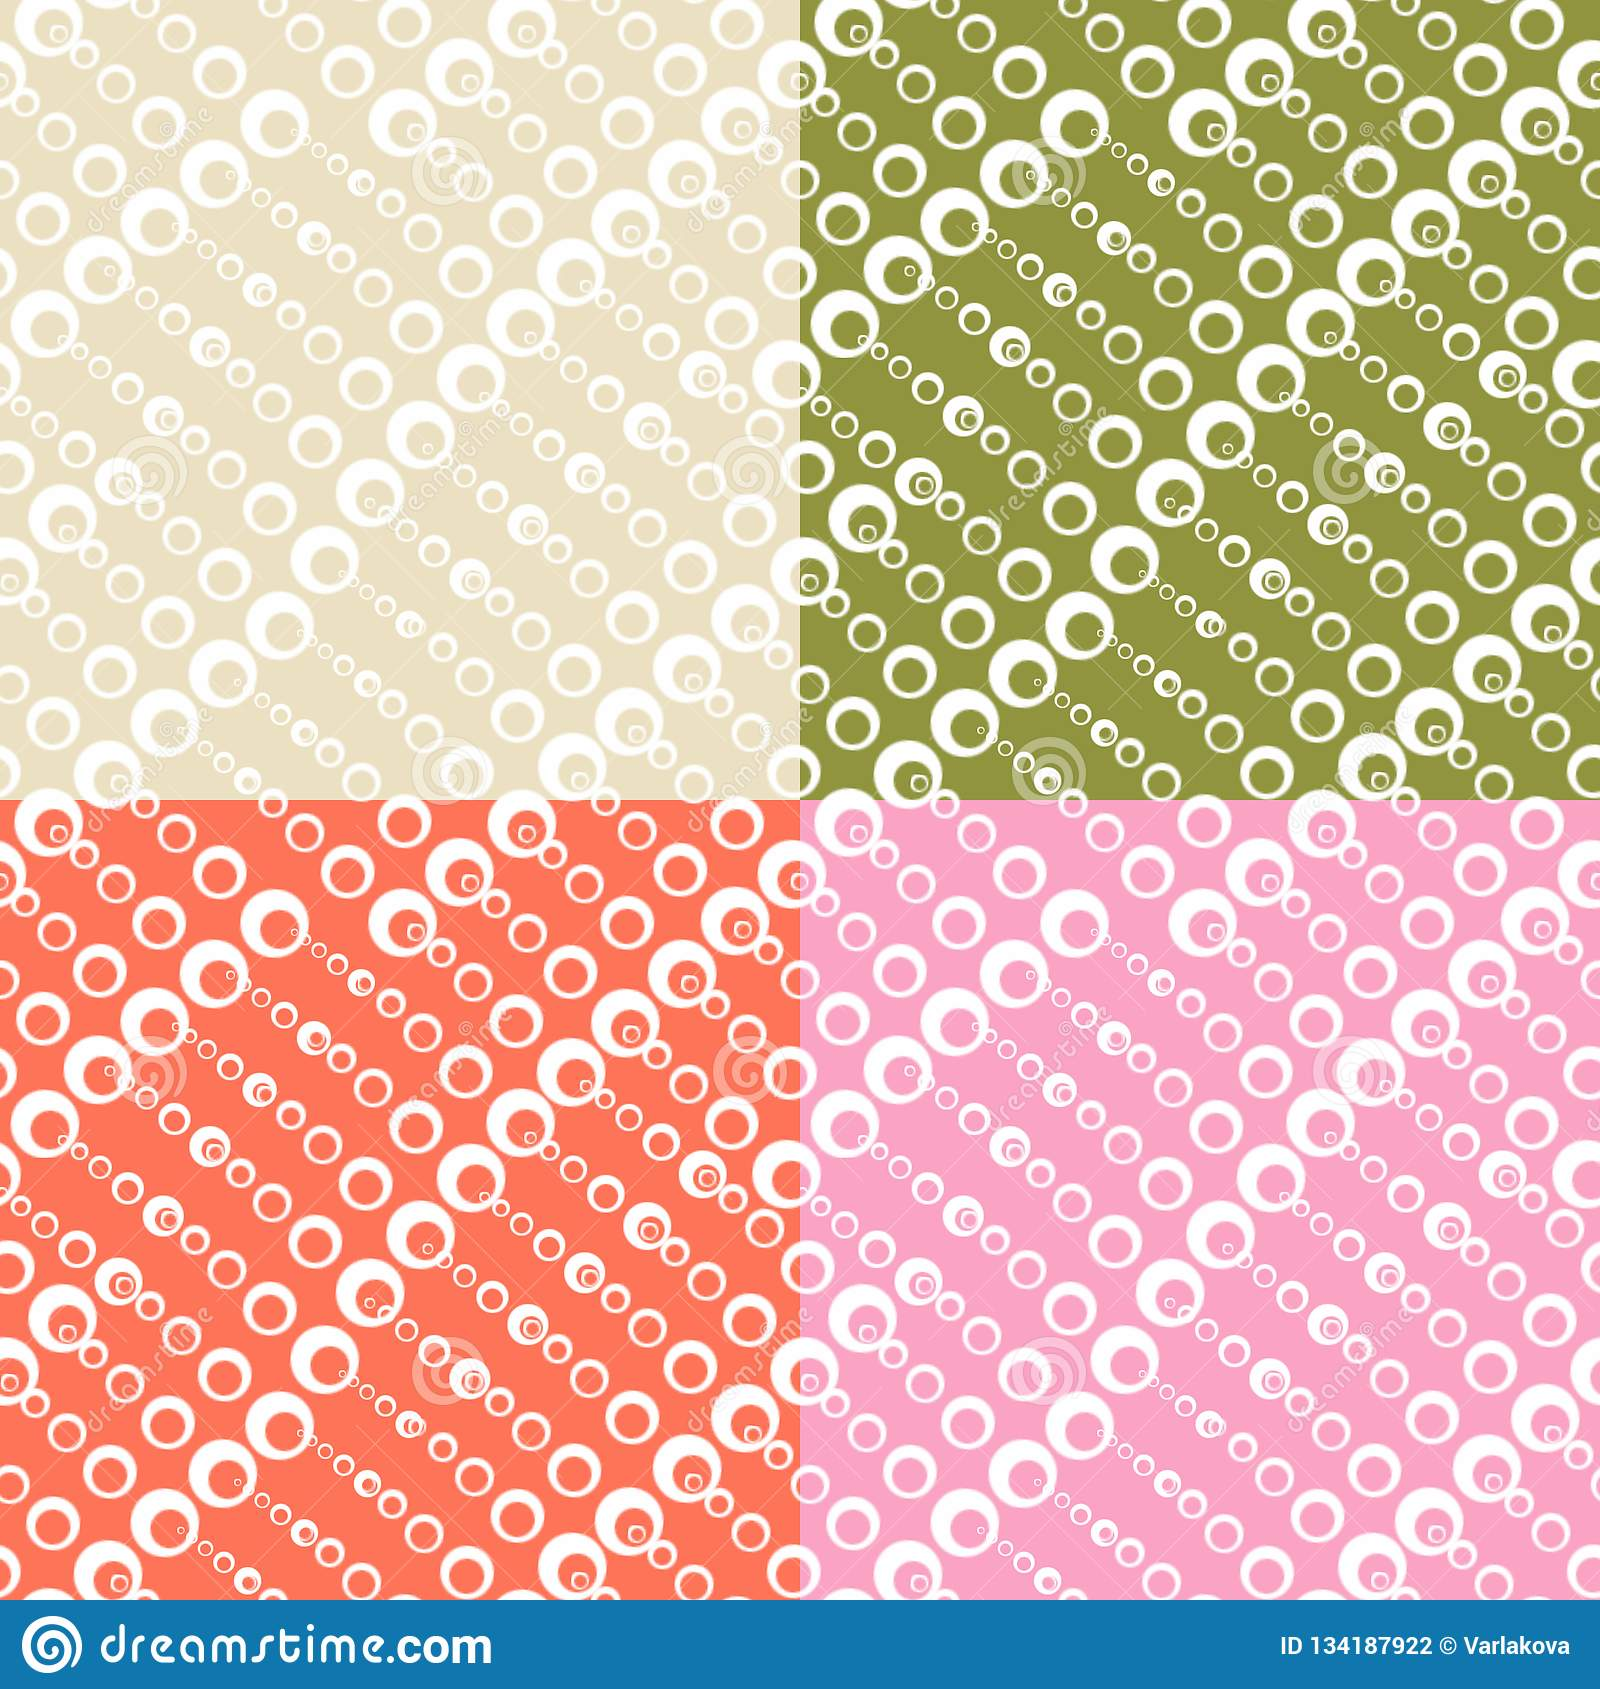 Set of seamless textures with circles of different sizes